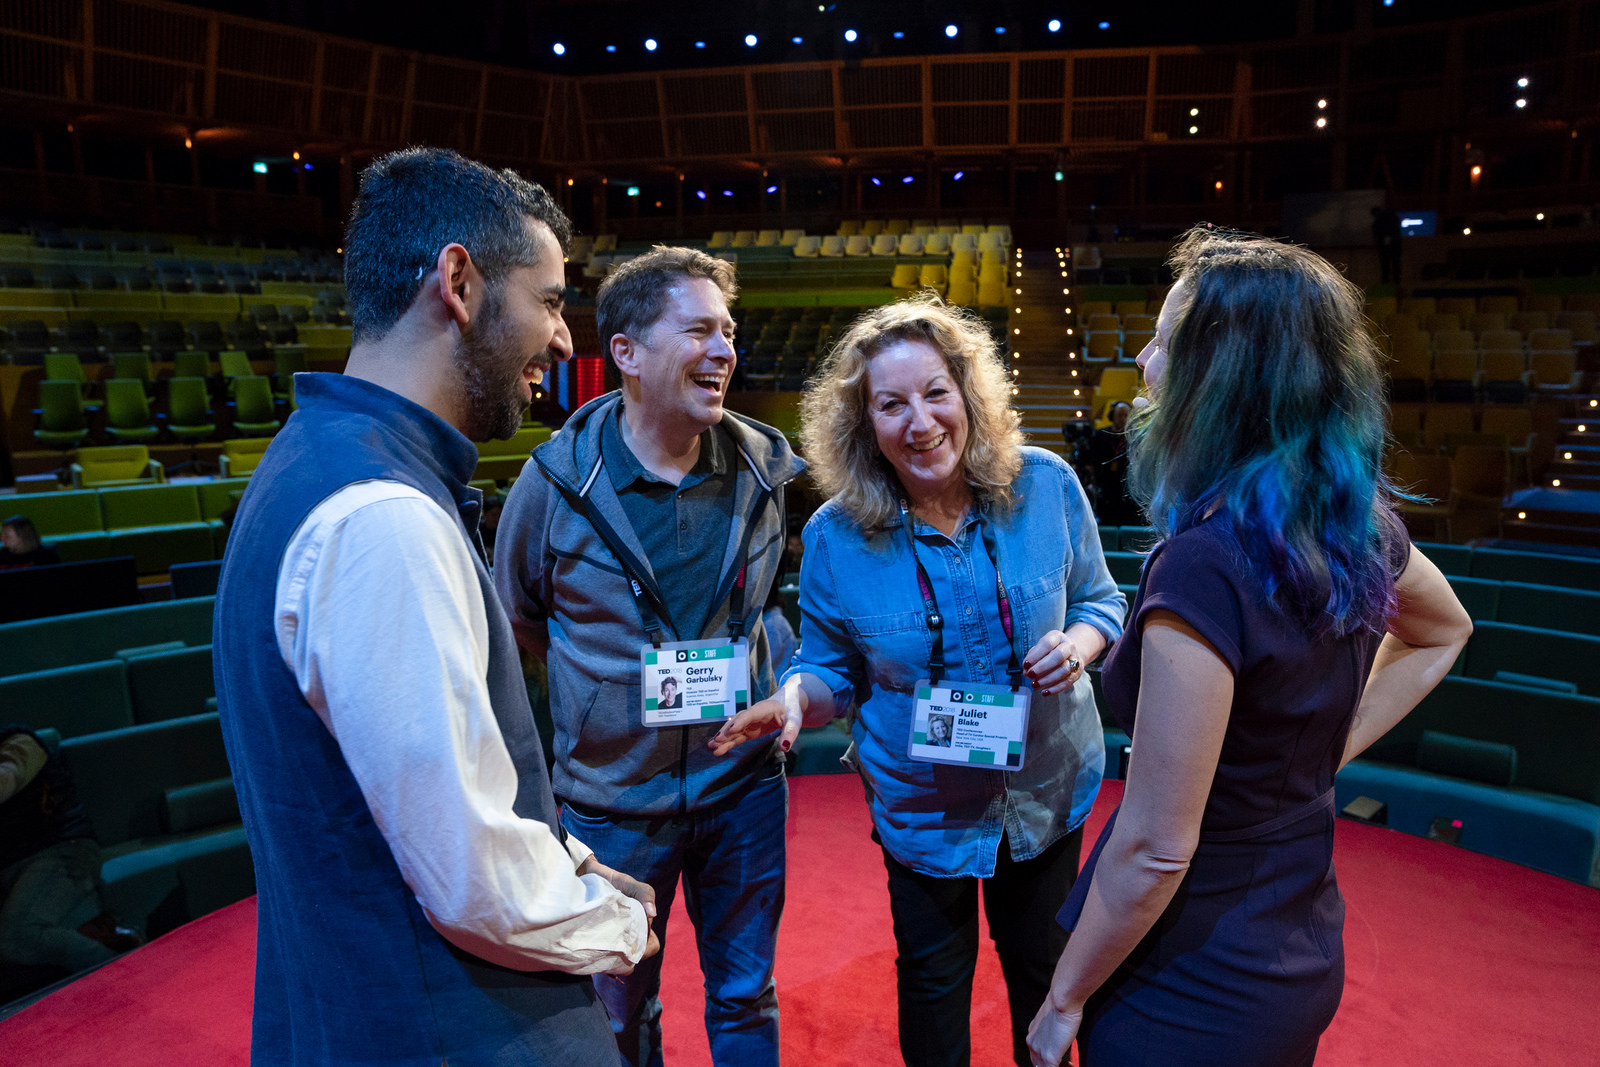 Before the conference opens, tree days of onstage rehearsals are a final opportunity to finesse scripts -- and a chance for speakers to get comfortable on the red circle. Here, curators Gerry Garbulsky and Juliet Blake, at center, review rehearsal notes with speakers Surya Mattu, far left, and Kashmir Hill, far right. Photo: Ryan Lash